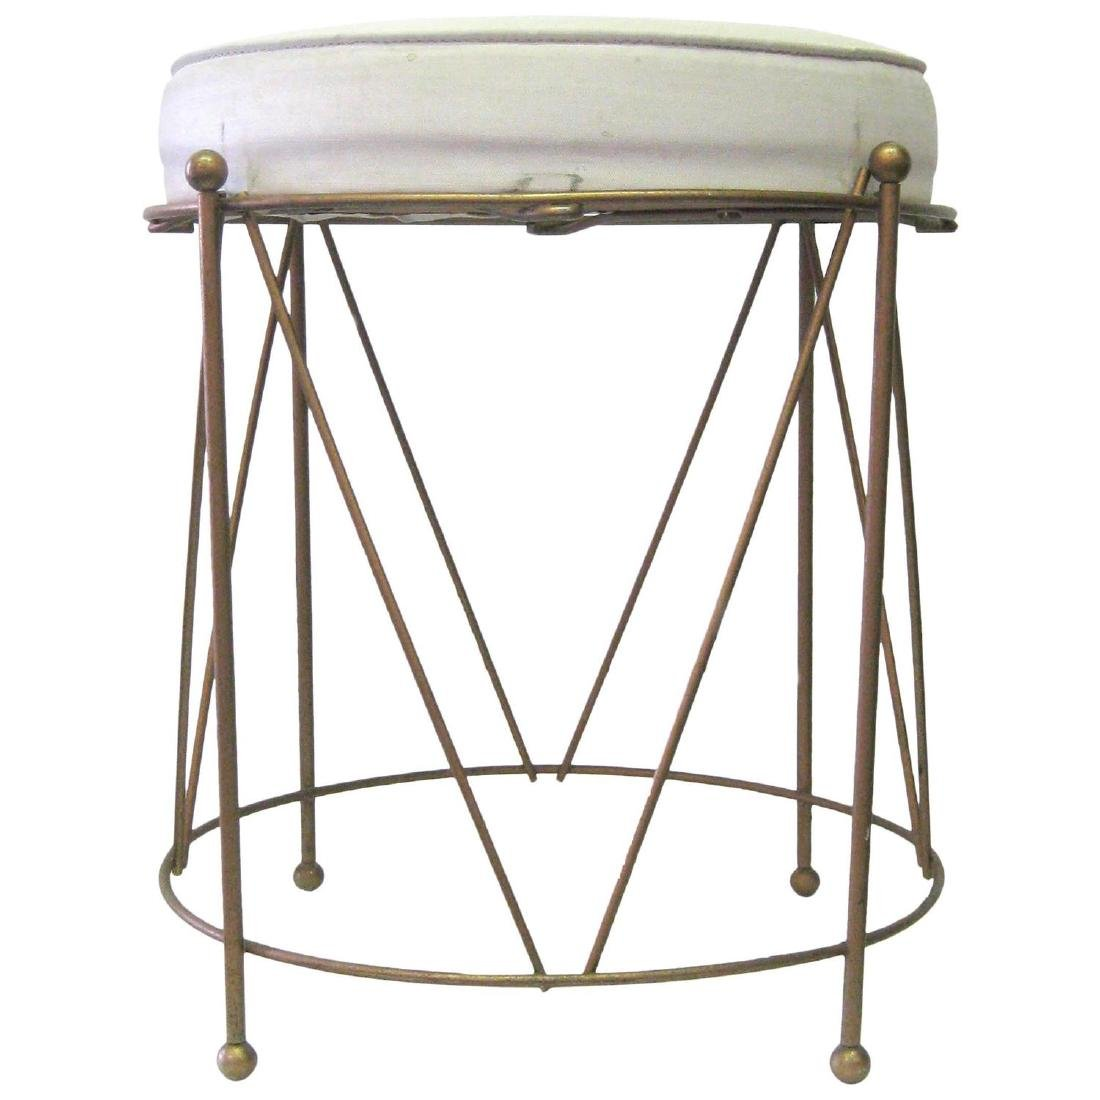 Jansen Style Stool in Brass with White Cushion